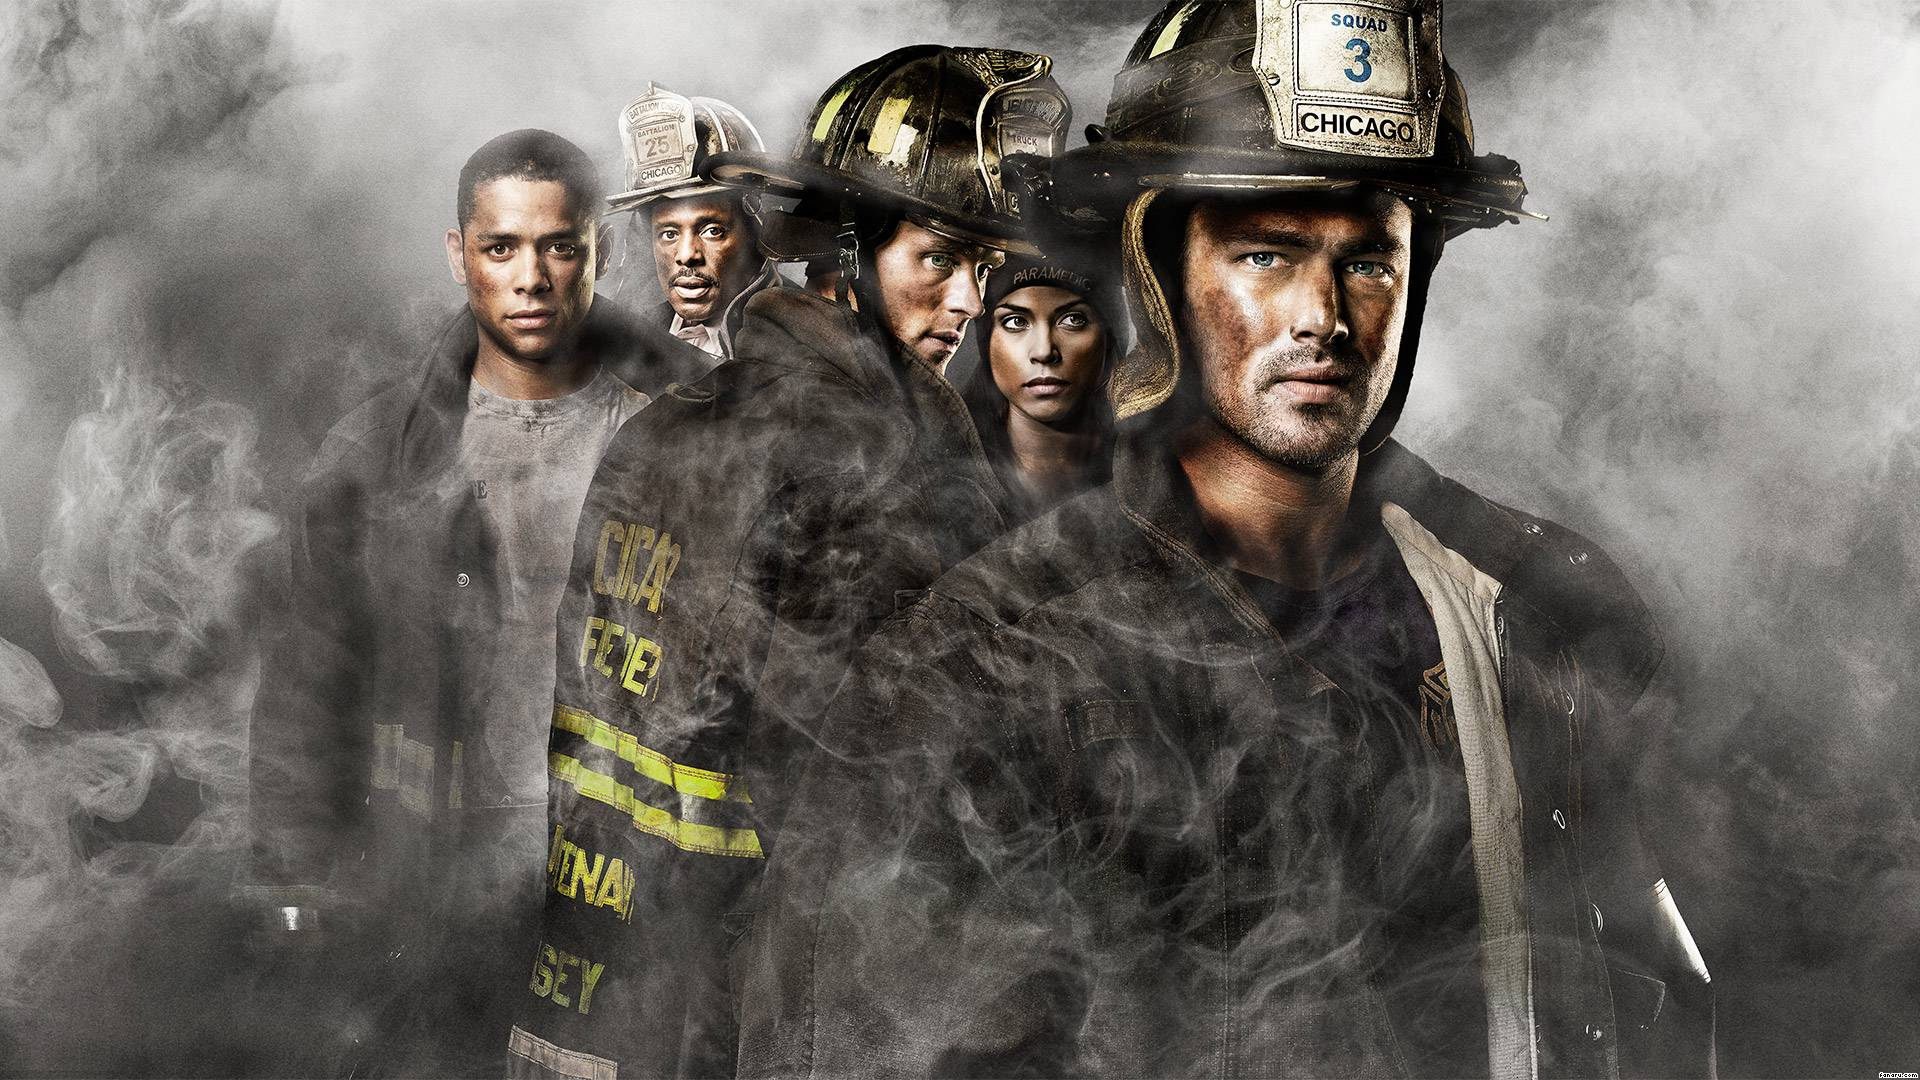 Chicago Fire Wallpapers High Resolution and Quality Download